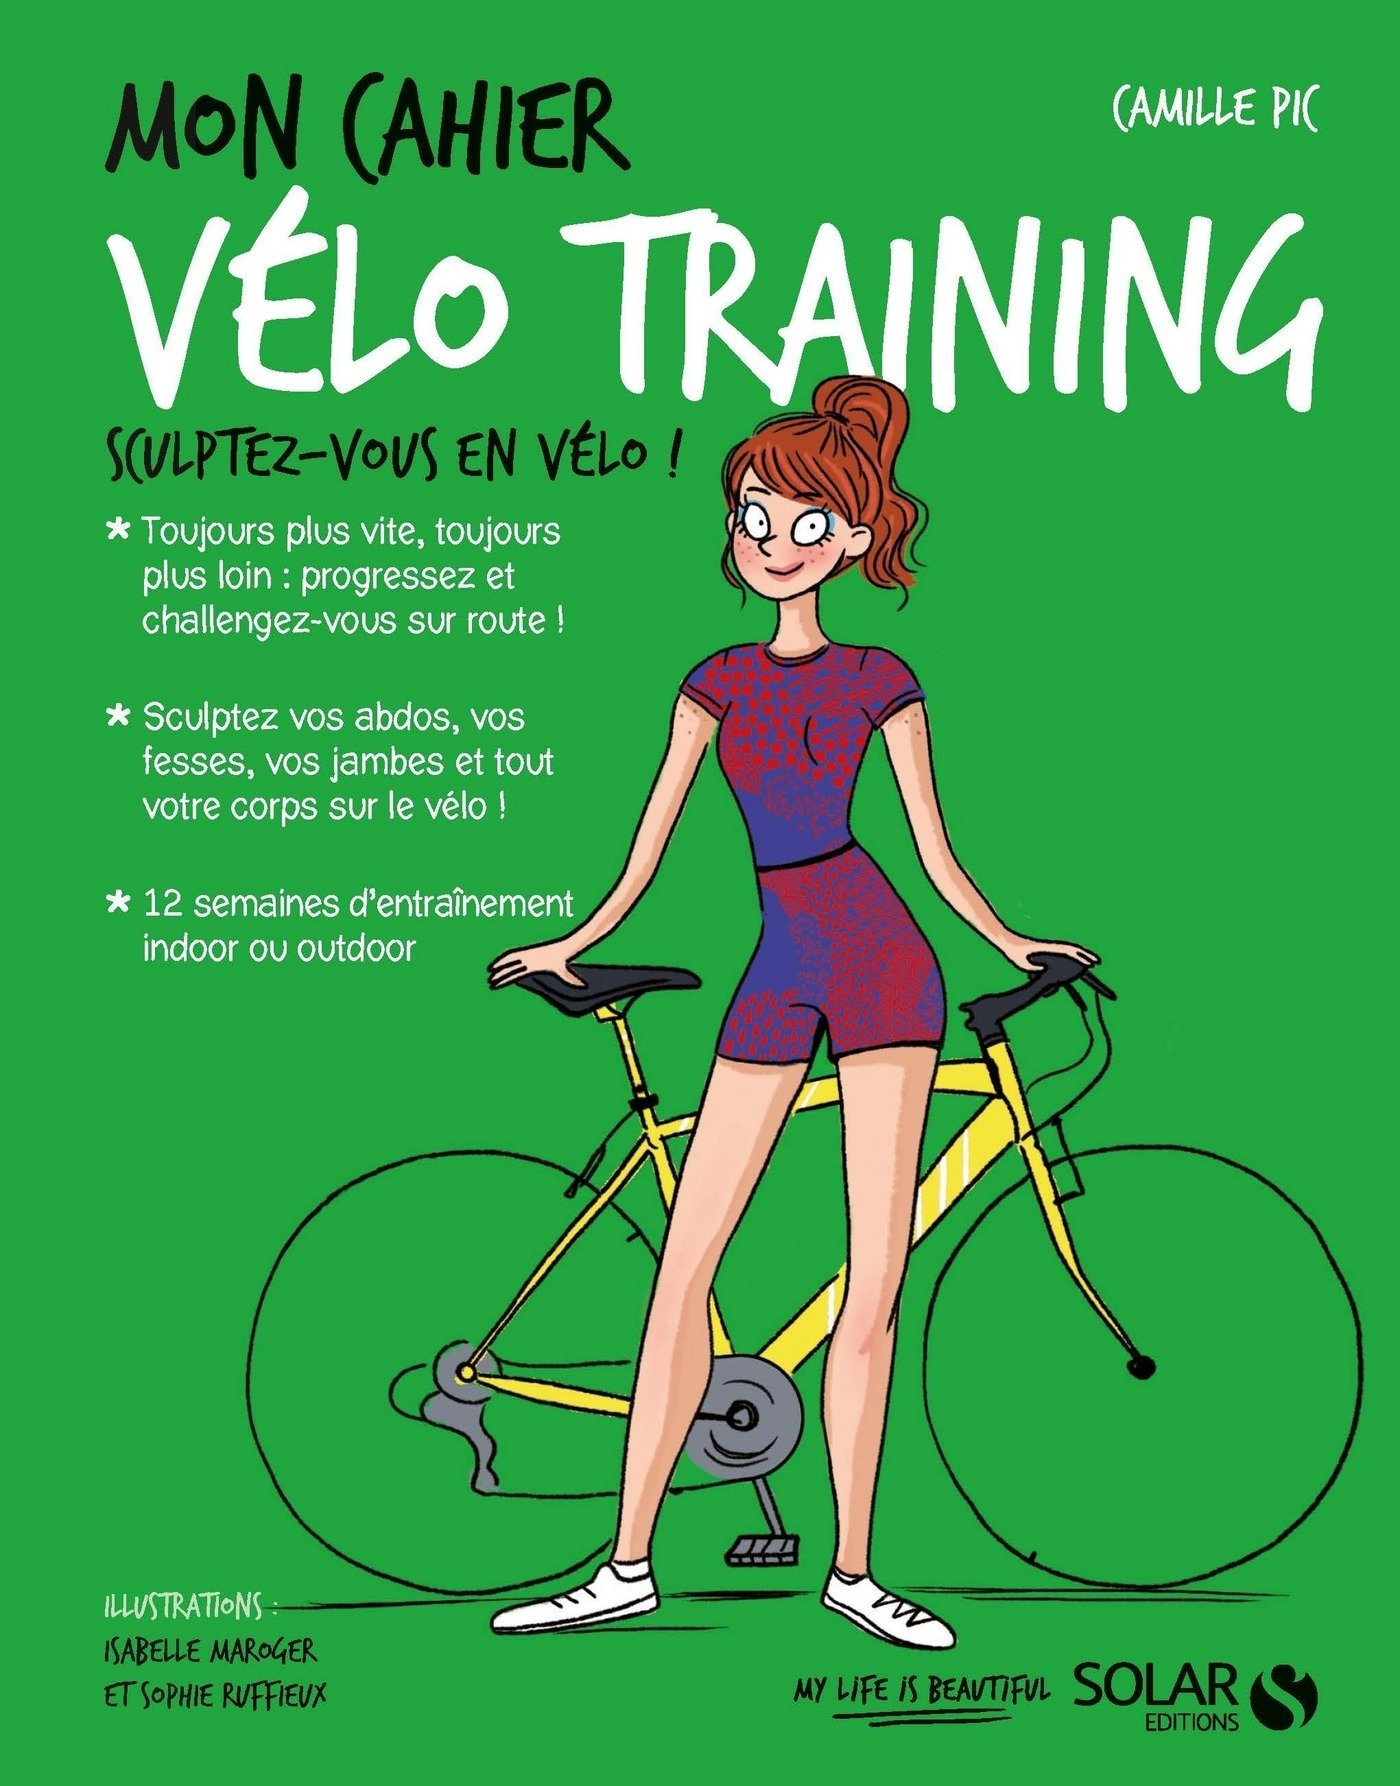 Image OfMon Cahier Vélo Training (French Edition)